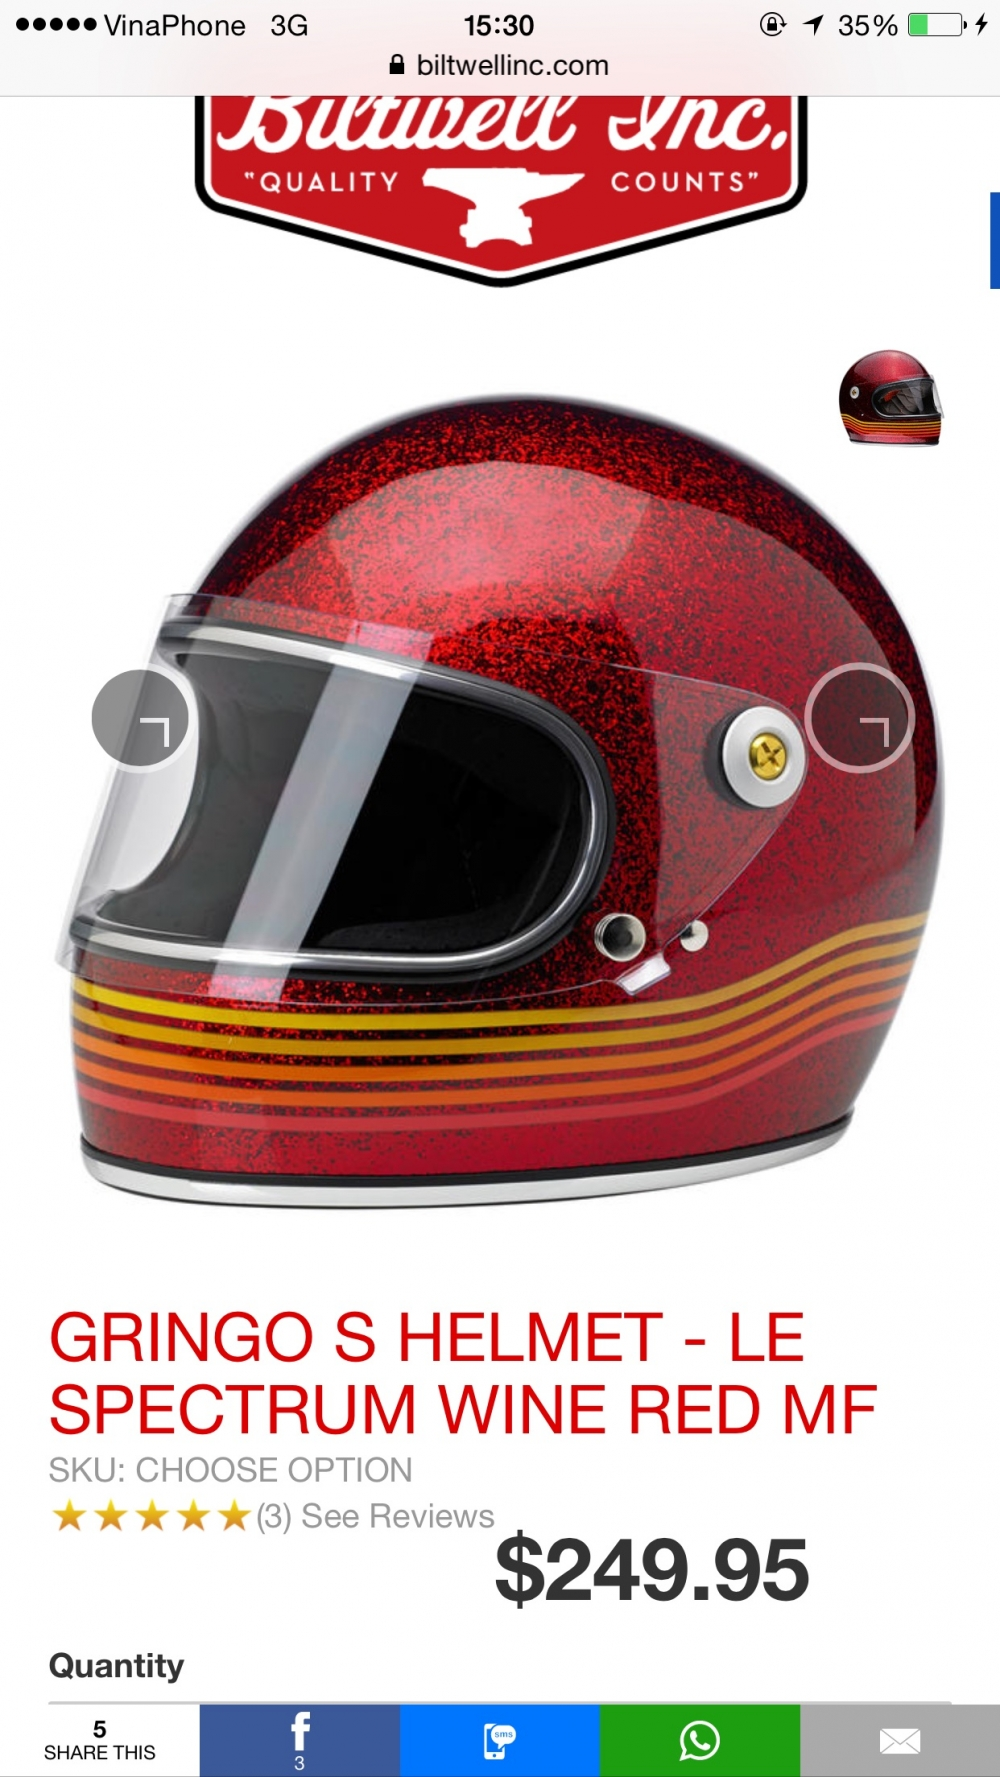 BILTWELL GRINGO S SPECTRUM WINE RED